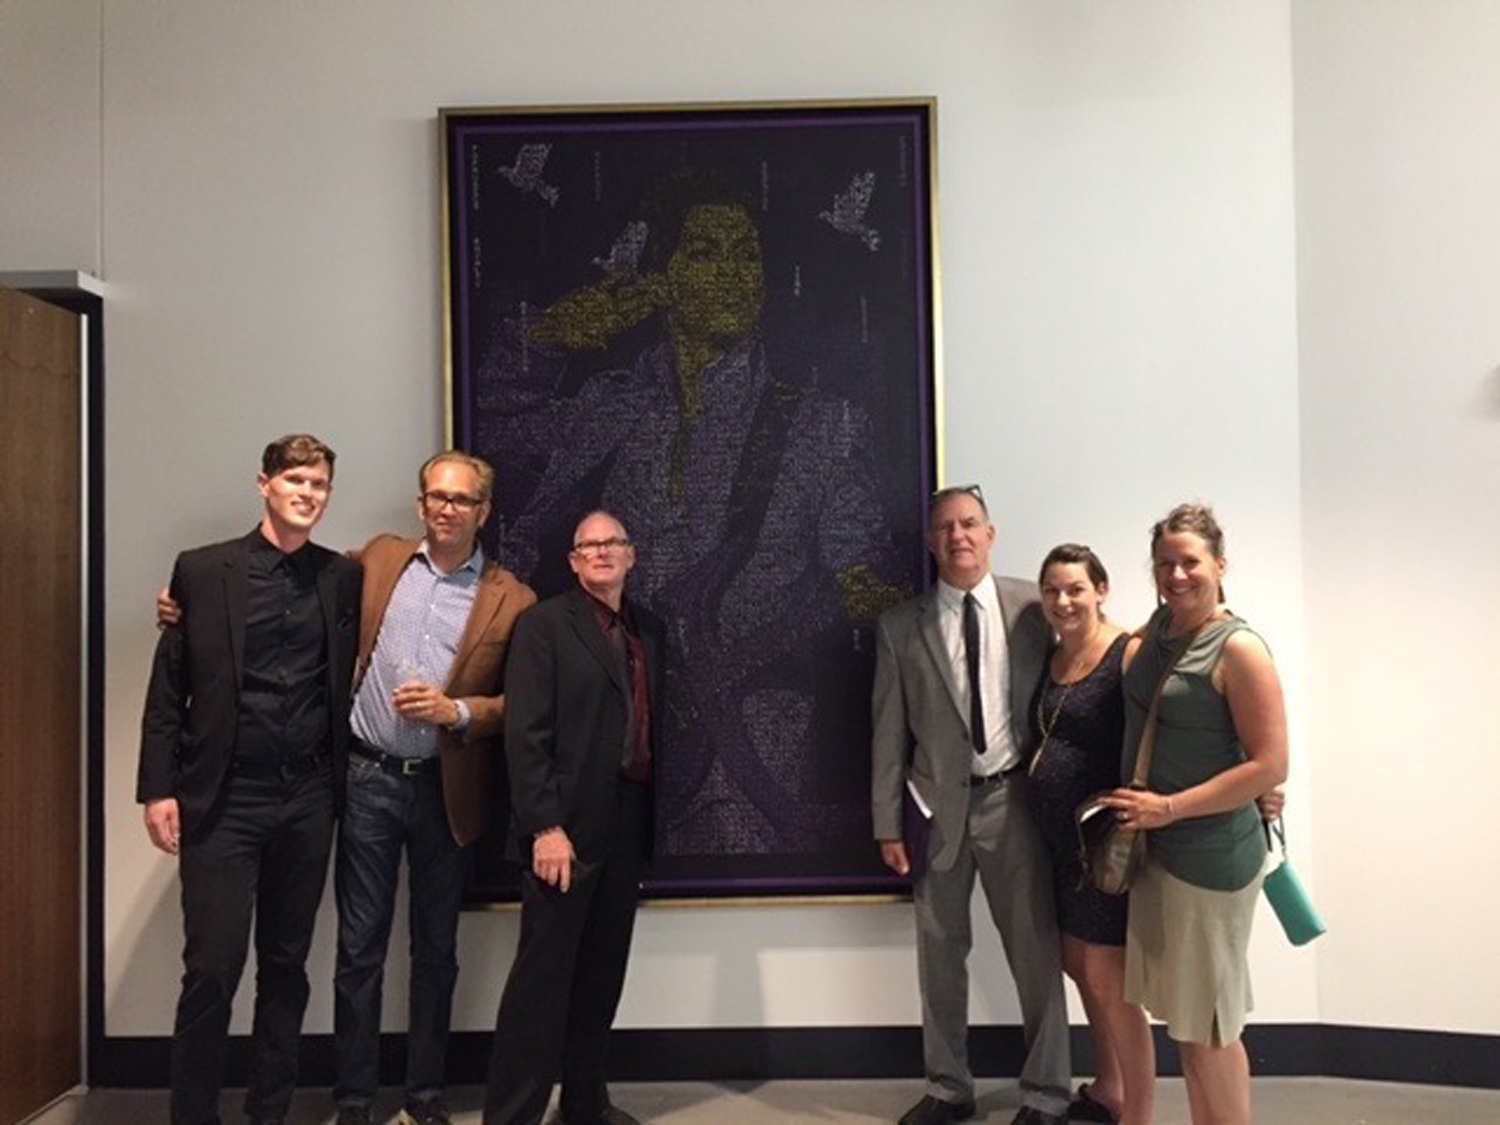 The Hang It crew at the art opening for the US Bank Stadium - standing in front of the Prince piece that we stretched and framed.